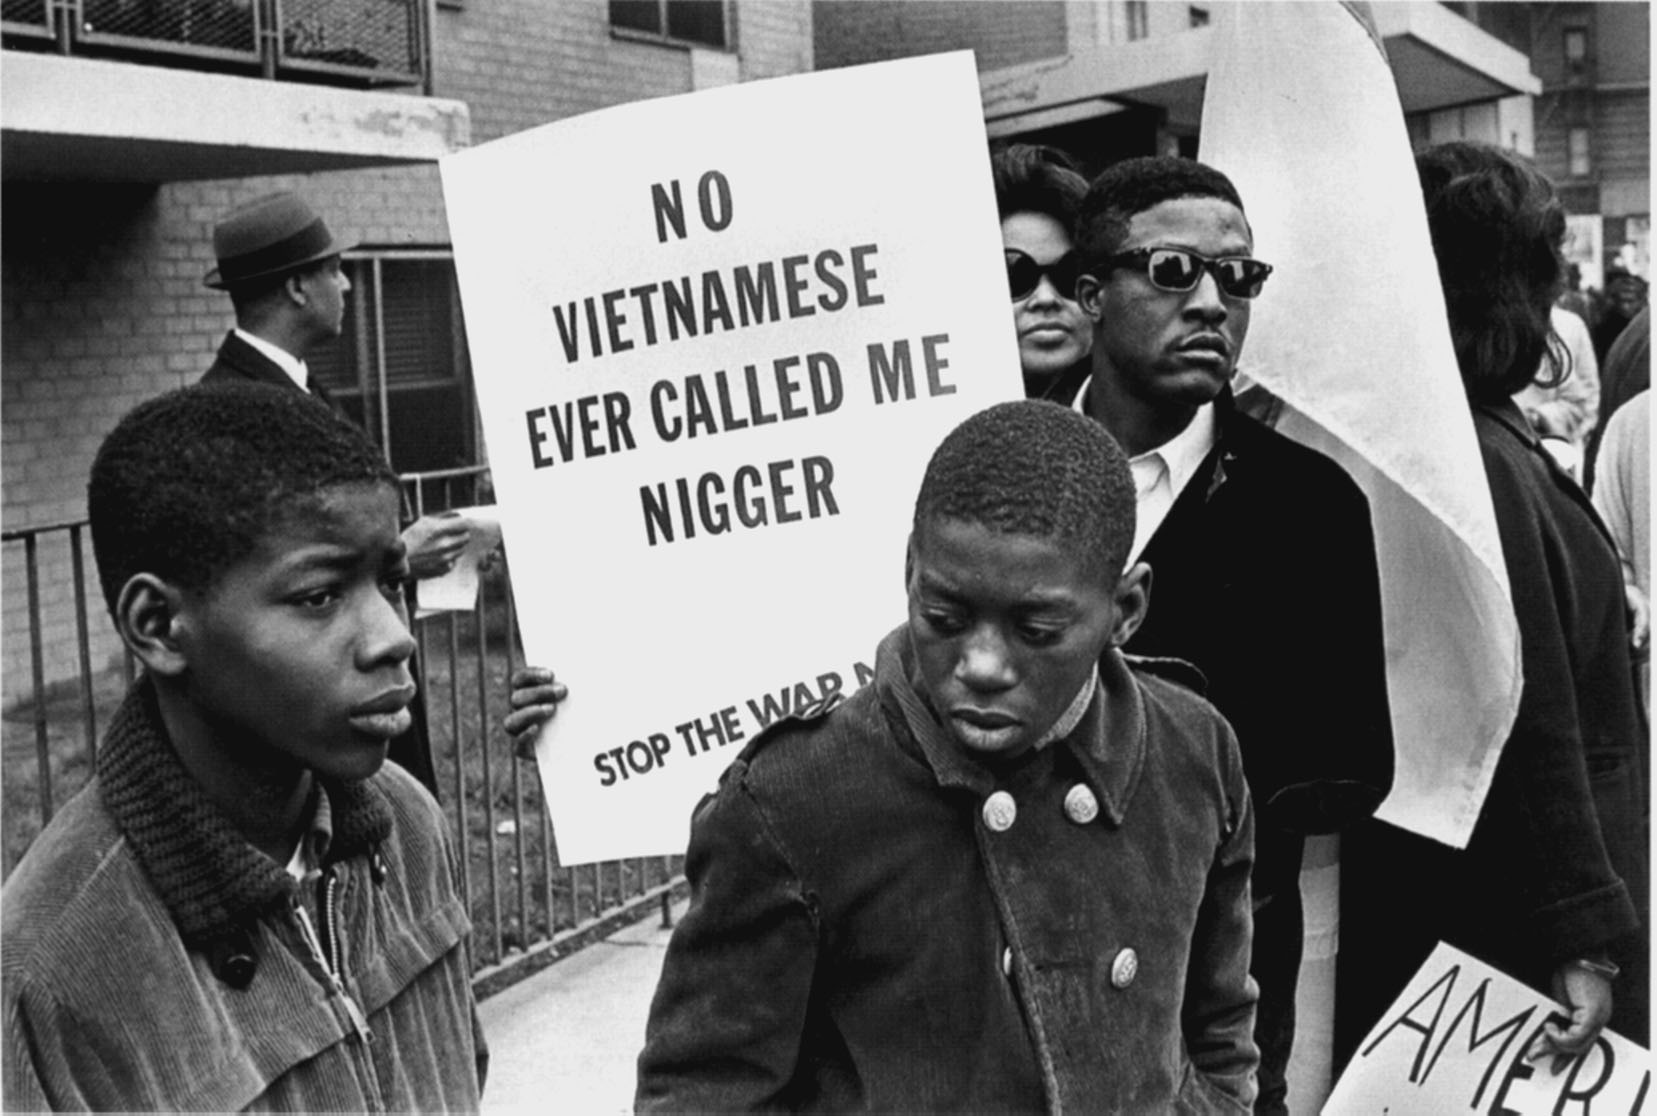 the criticism of civil rights activists against the us vietnam war